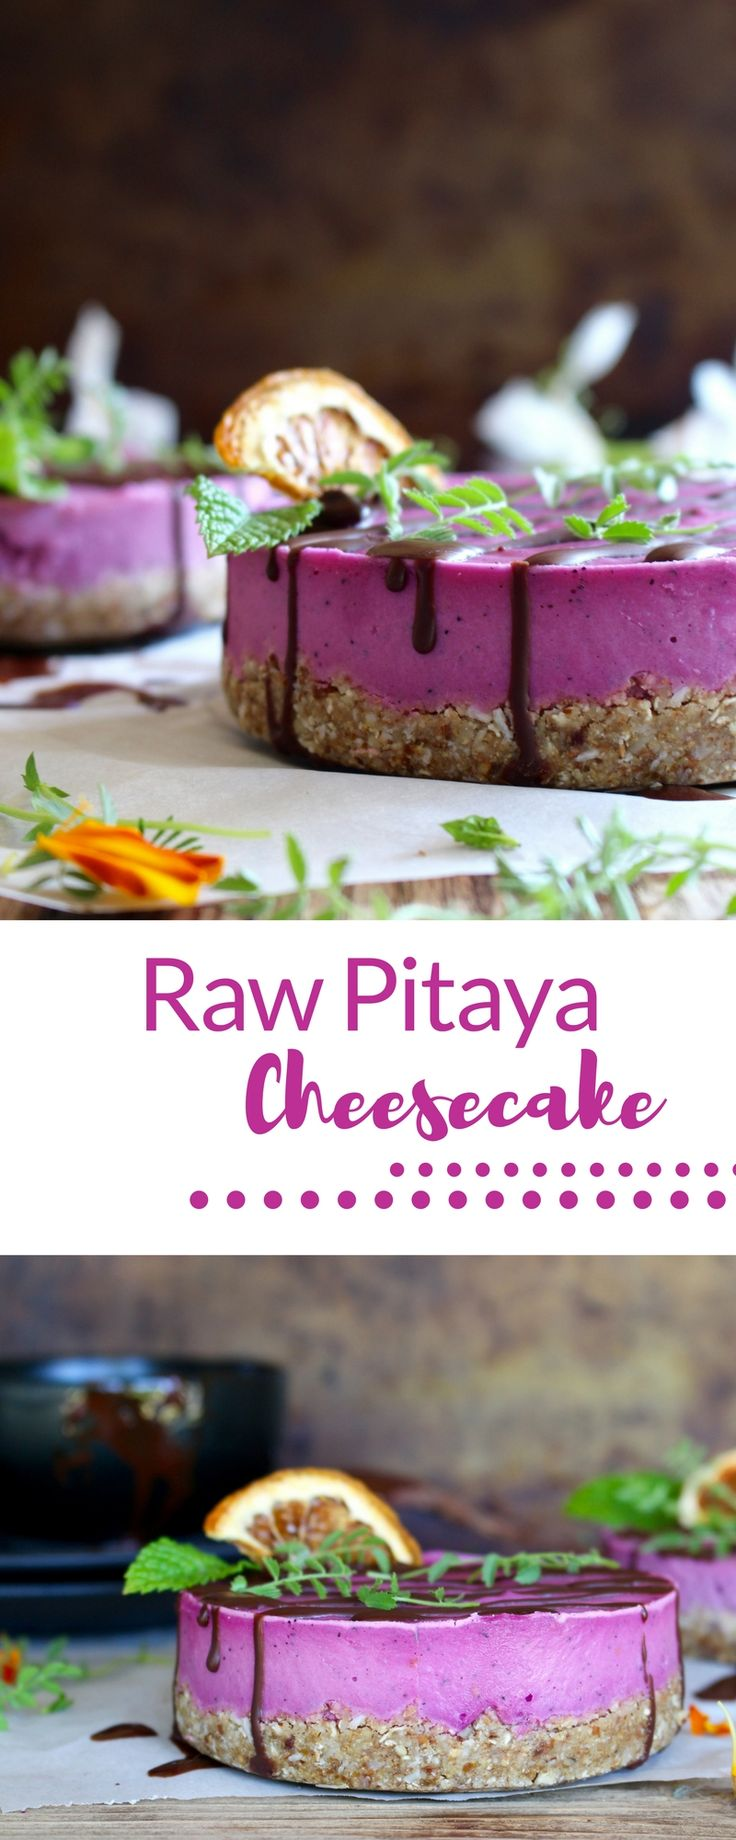 | vegan cheesecake | raw dessert | pink cheesecake || This raw, vegan cheesecake is made using a tiger nut flour base and a raw pitaya filling.  High in antioxidants, easy to make and definitely a crowd pleaser!